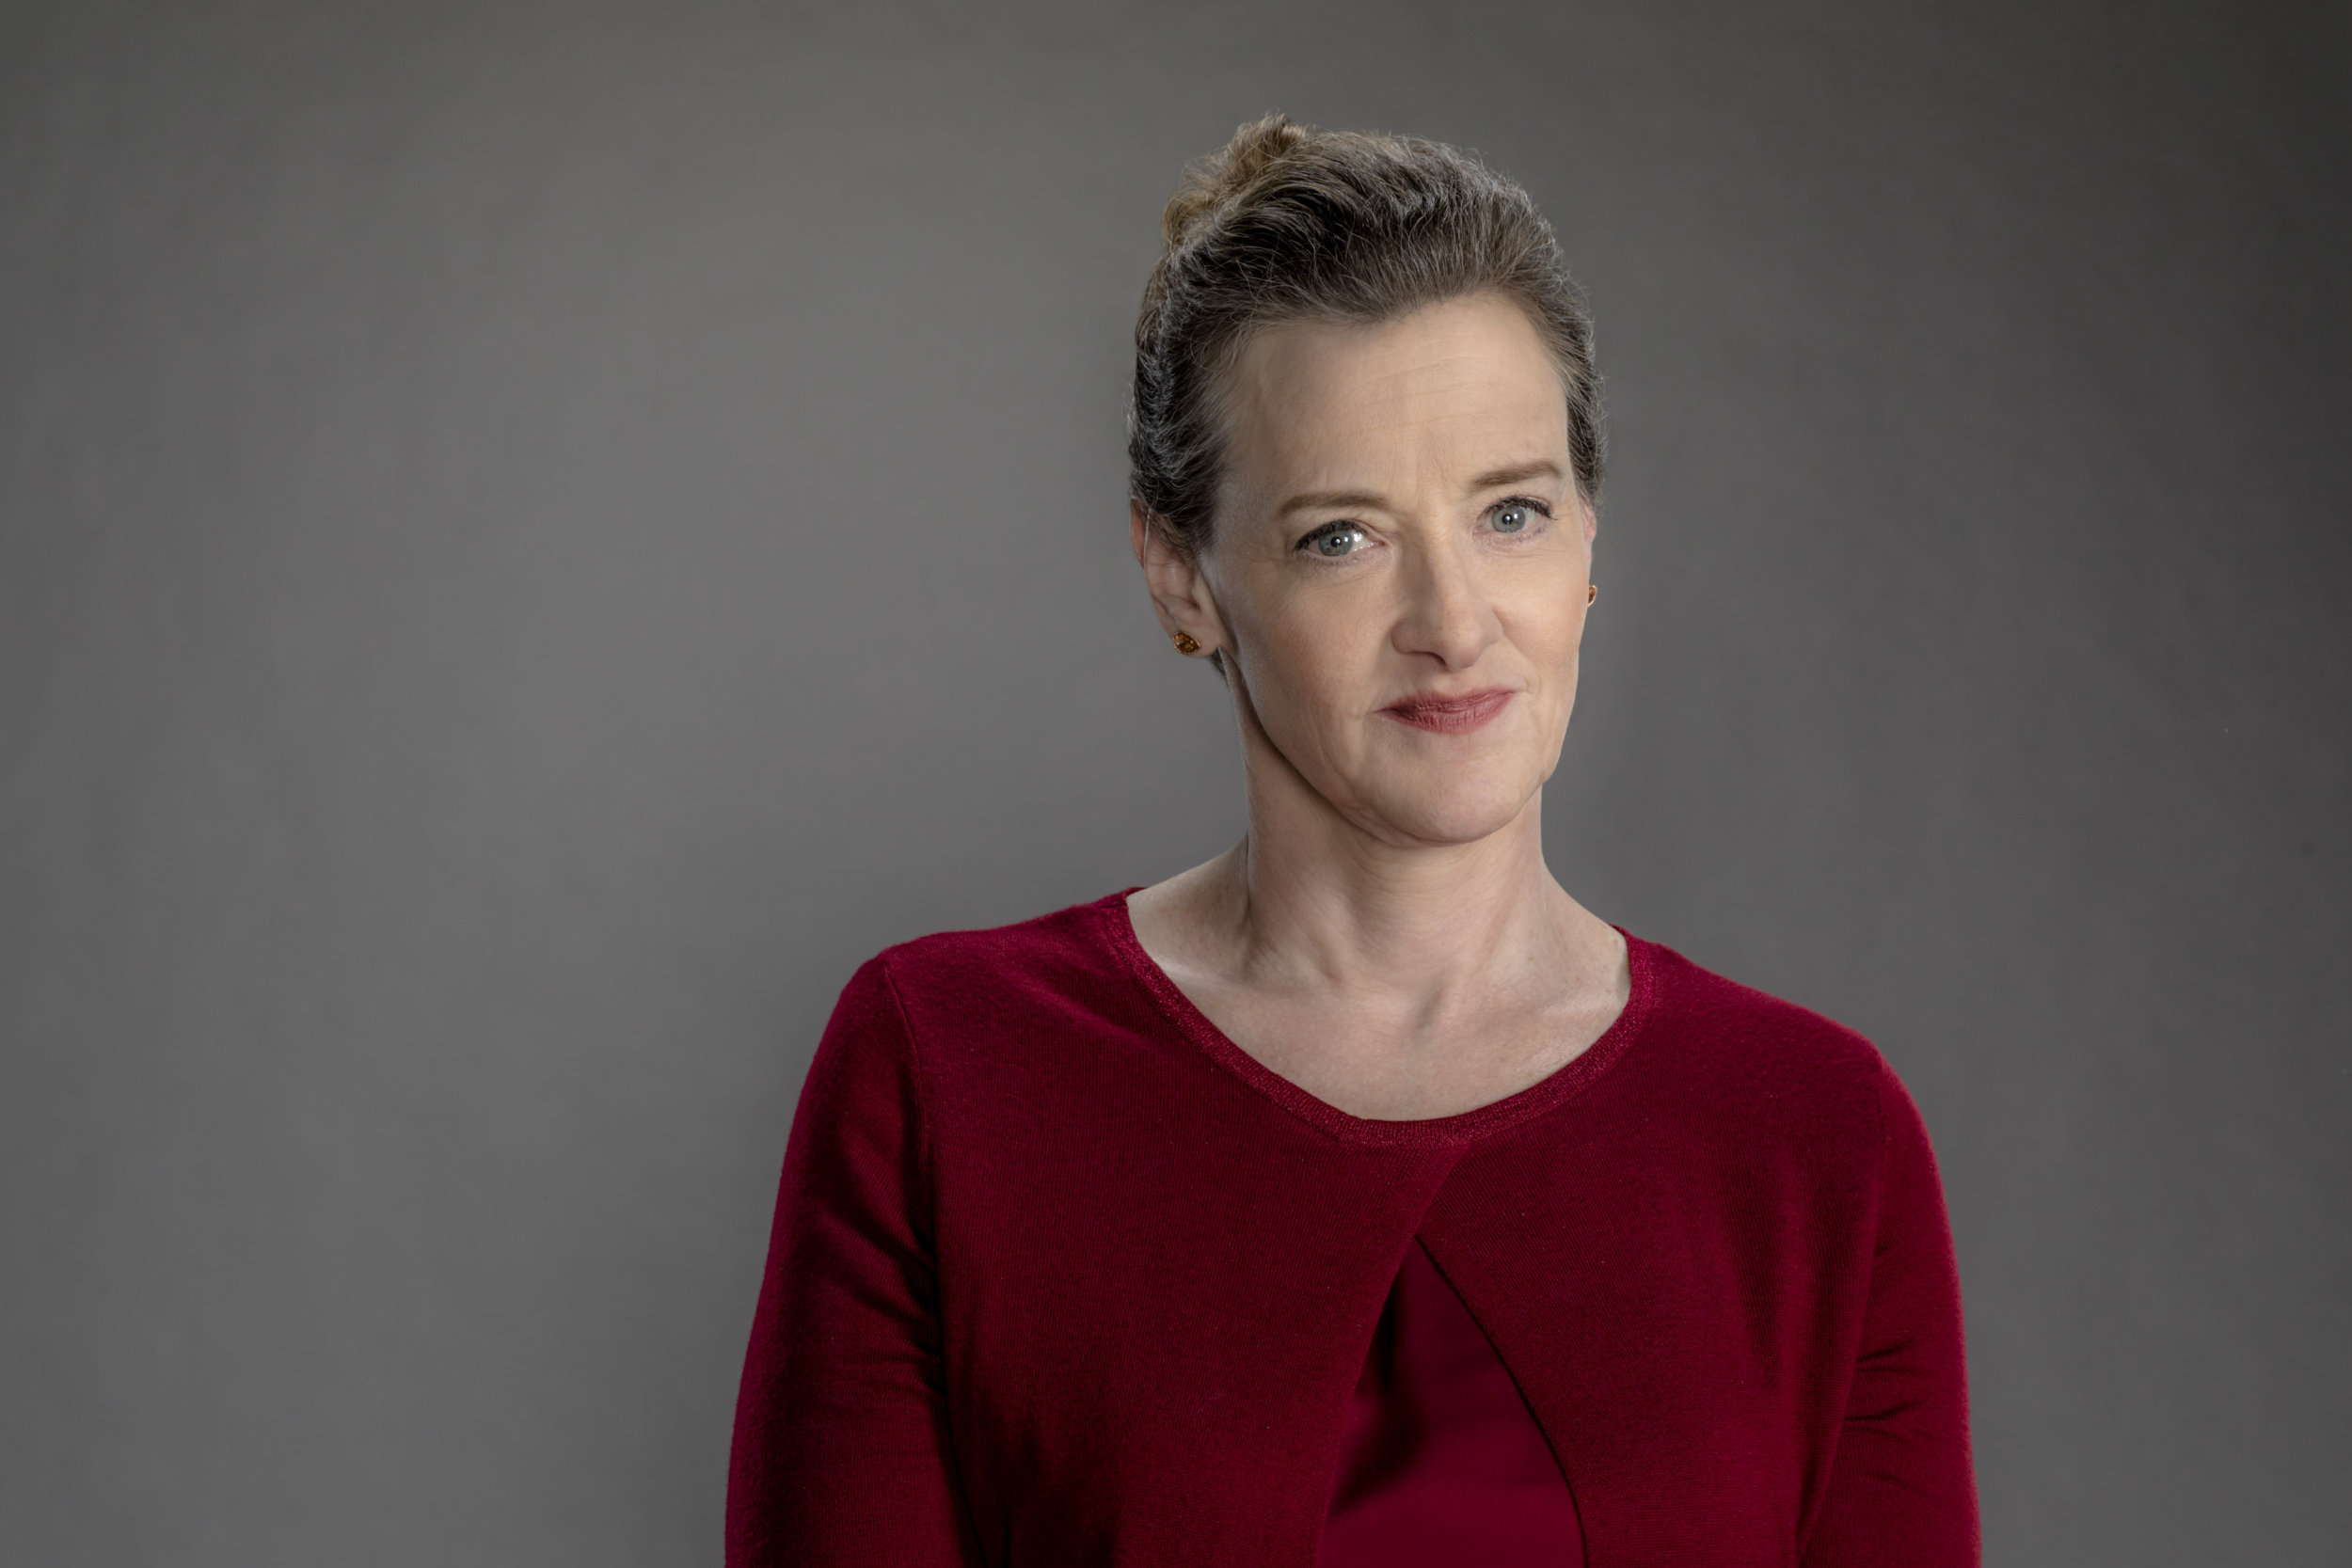 Christmas Train Cast.Joan Cusack As Agnes On The Christmas Train Hallmark